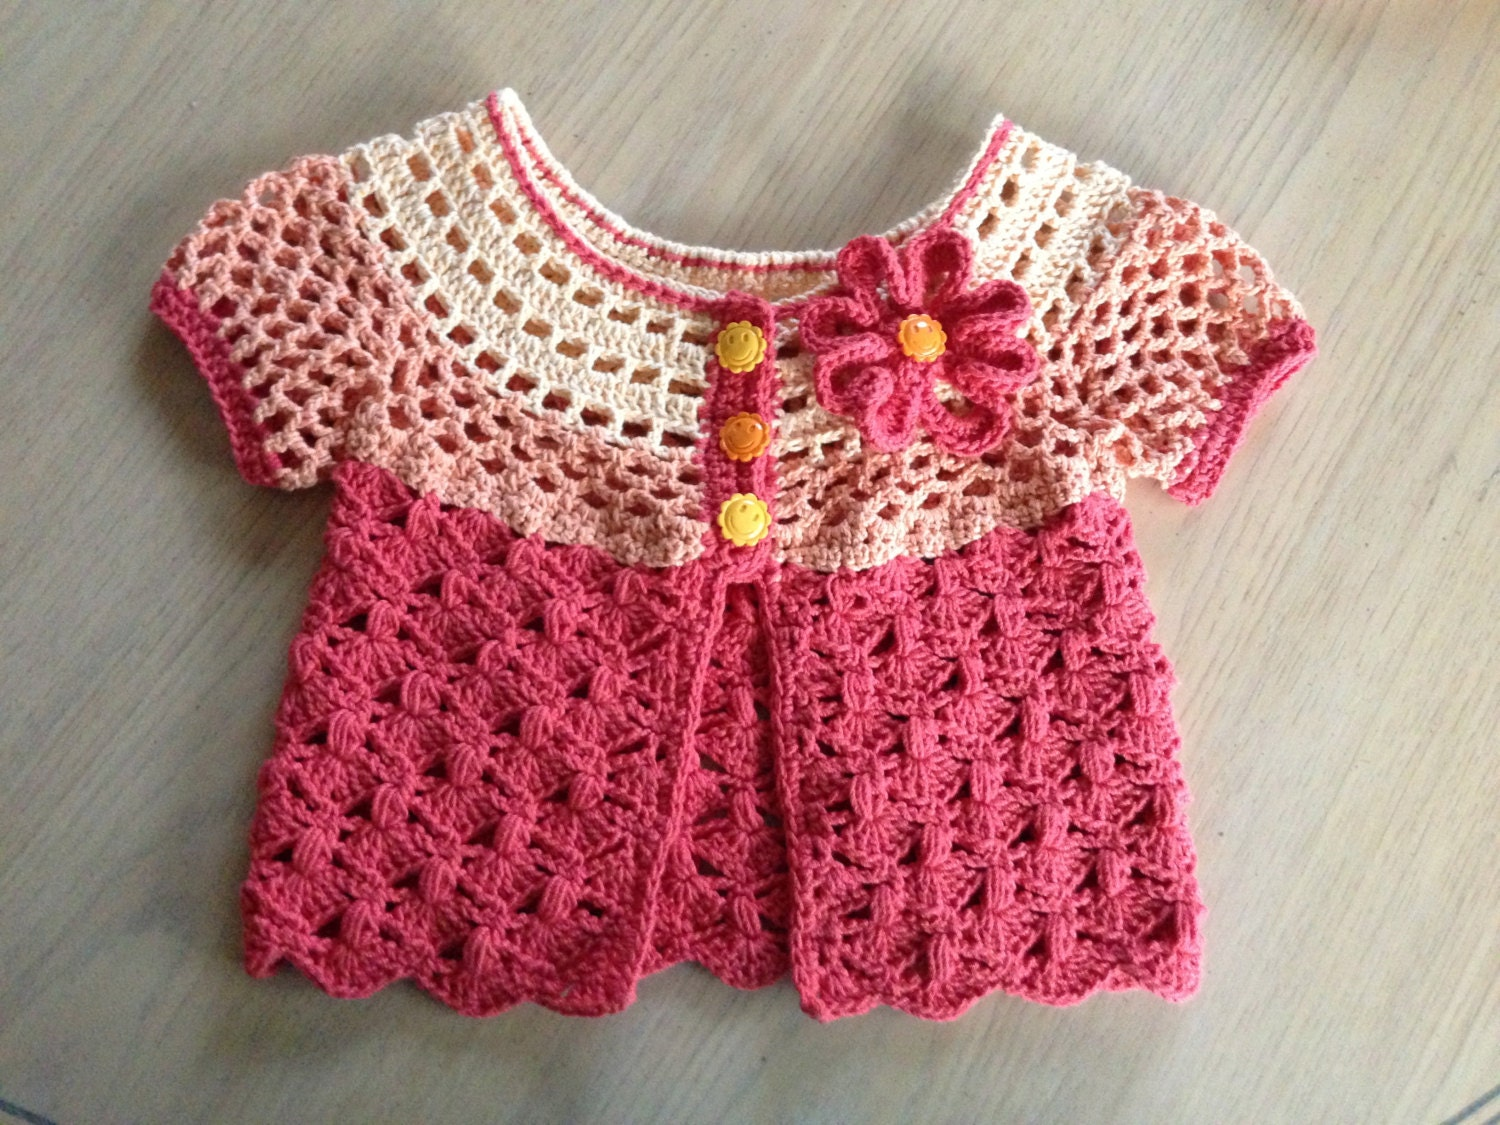 Crochet Jumper Patterns Uk : Crochet Pattern for Baby Cardigan Sweater by ThePatternParadise